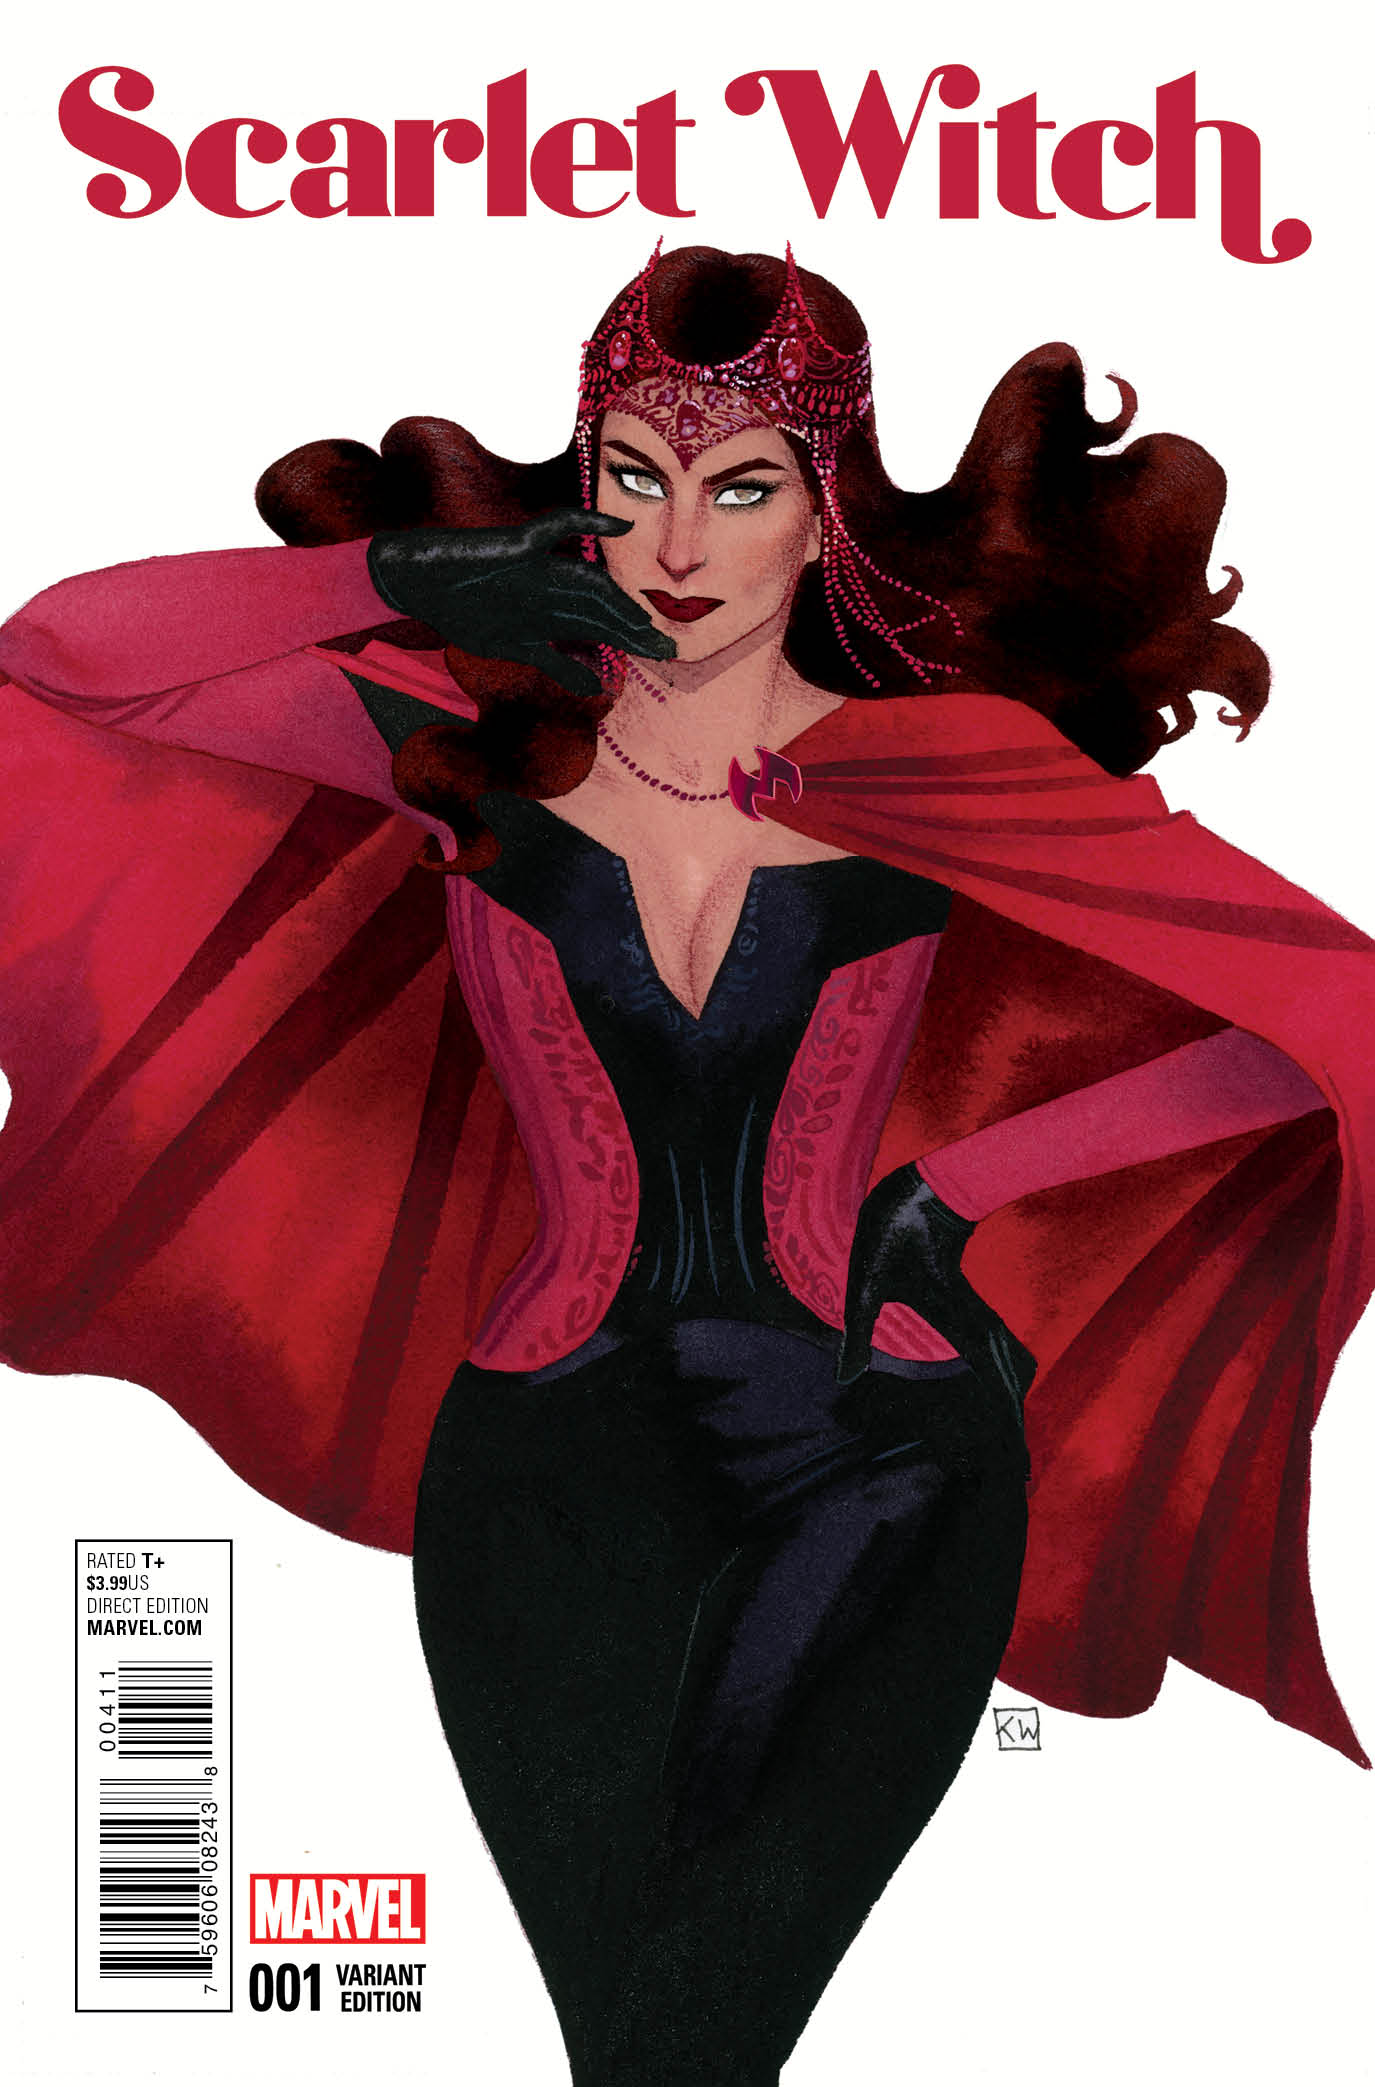 Scarlet_Witch_1_Wada_Variant